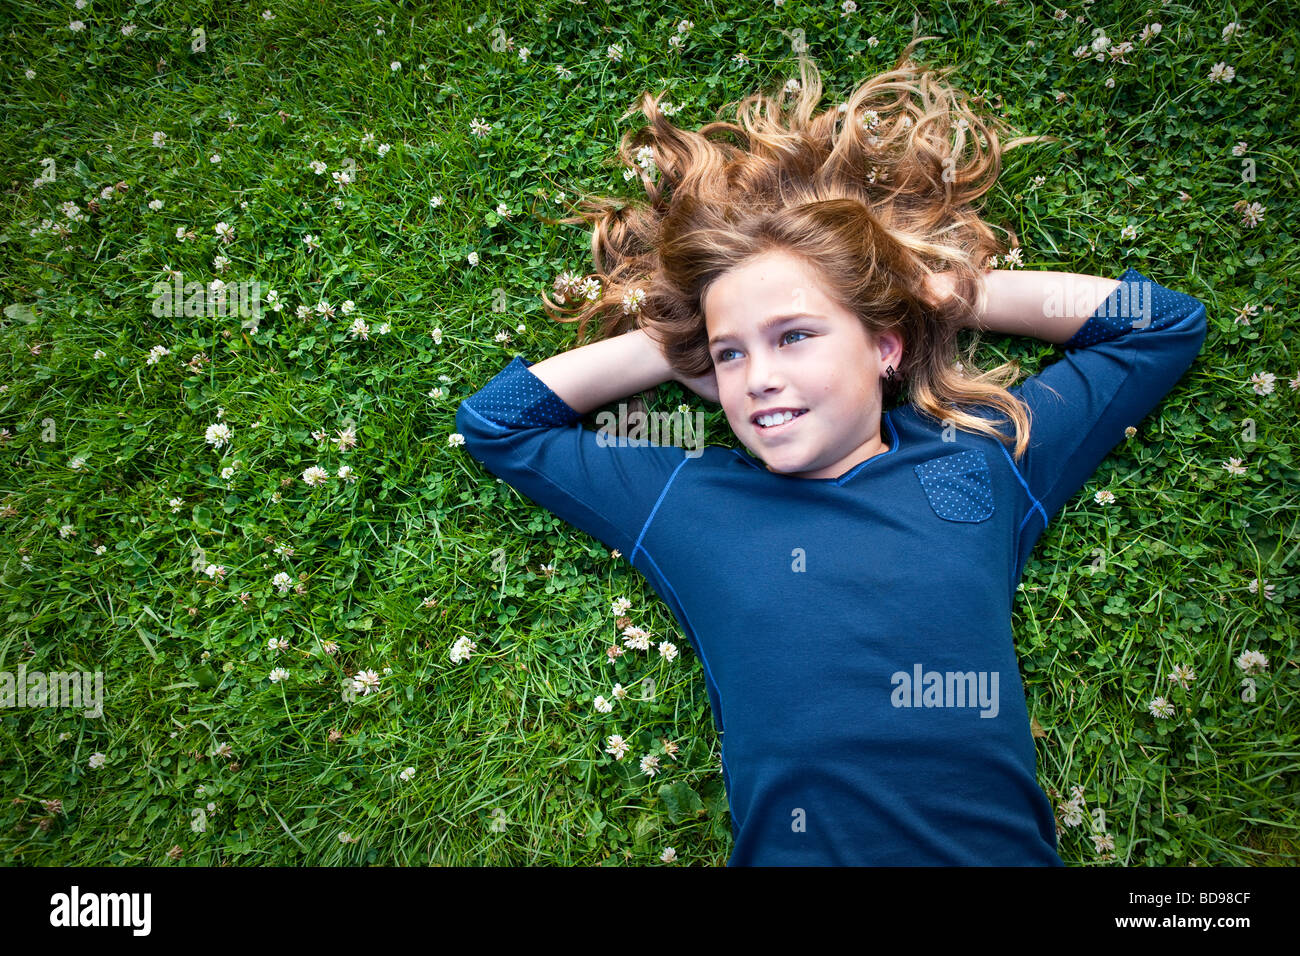 Girl 8-12 years old lies in a grassy field daydreaming - Stock Image